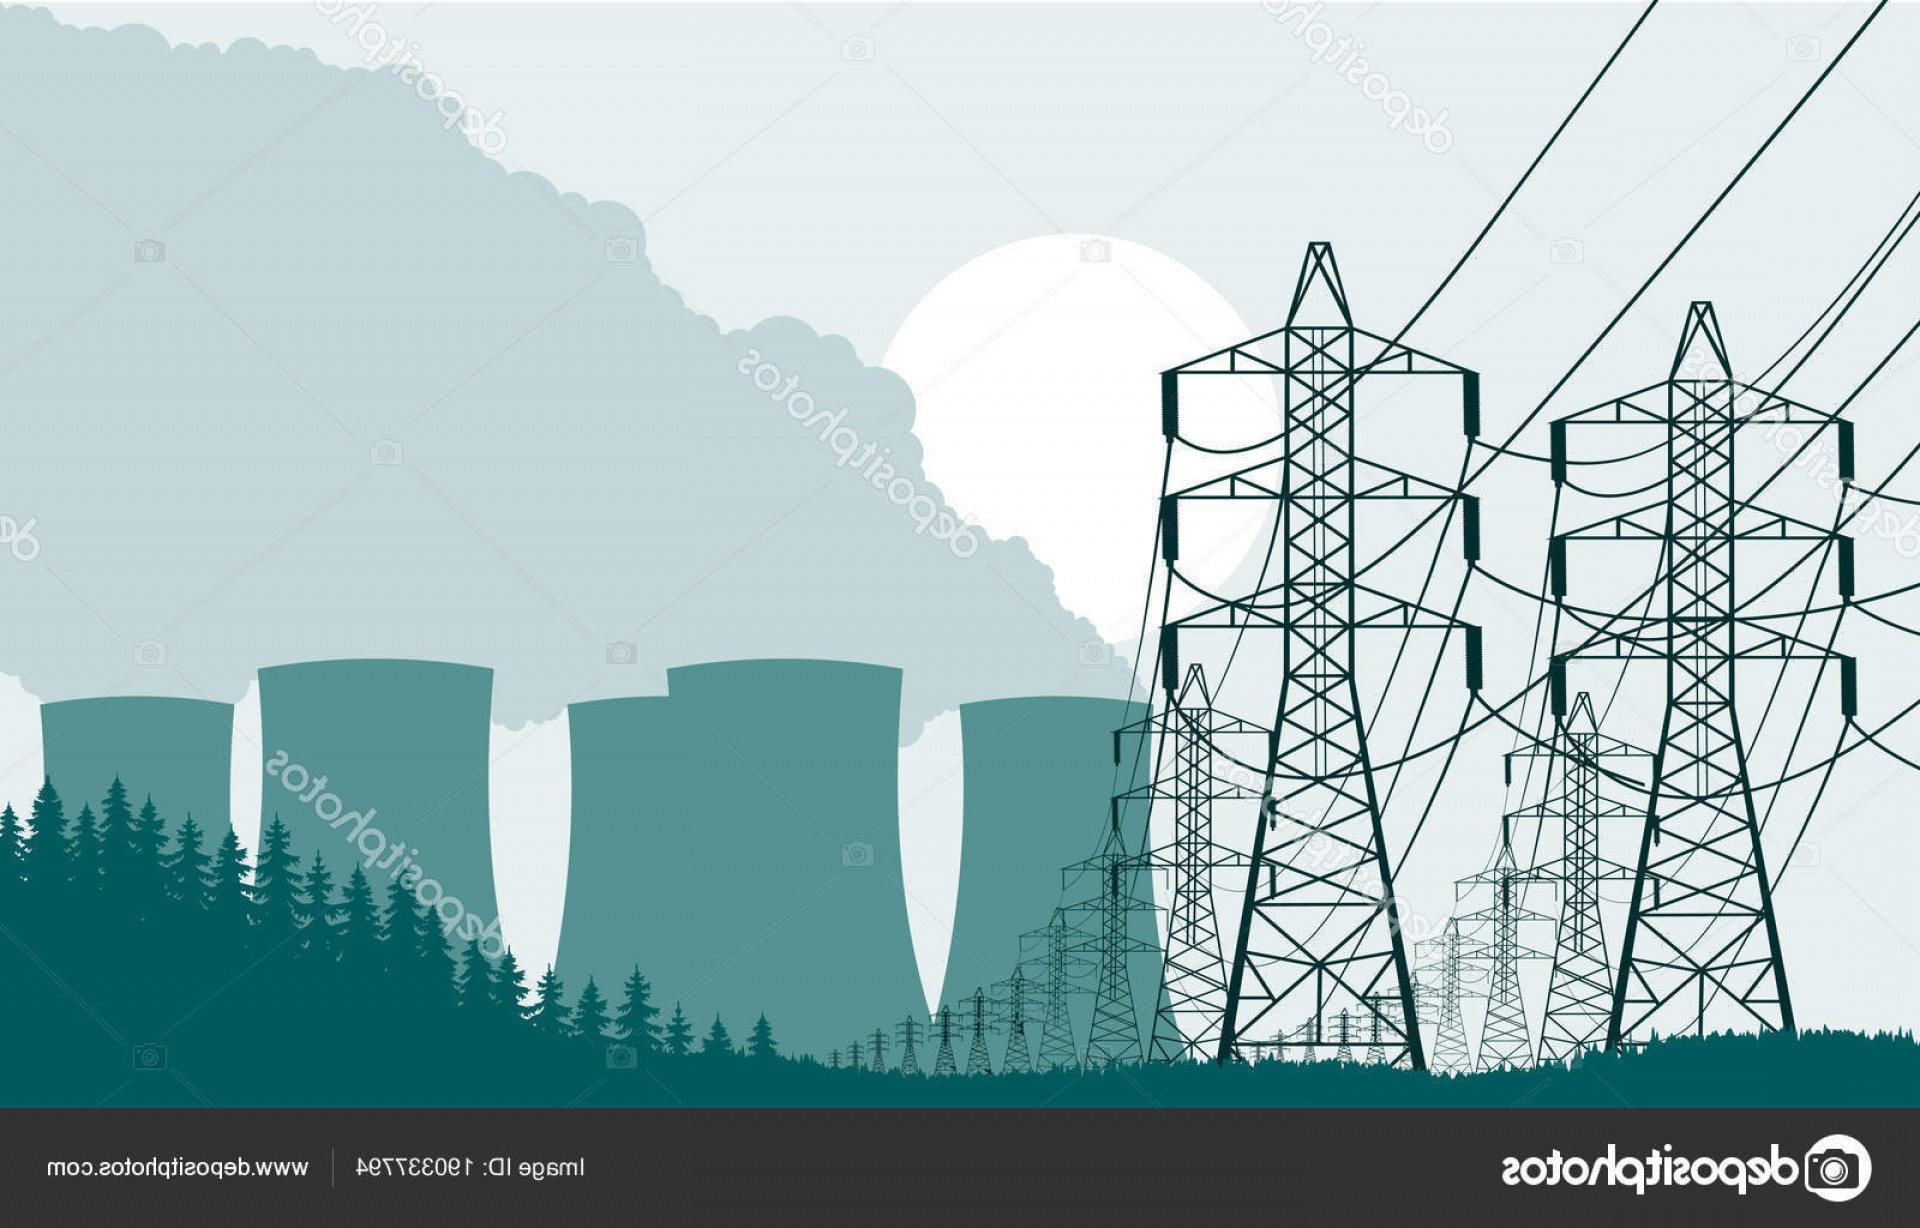 Vector Power Plant Utility: Stock Illustration Industrial Background Nuclear Power Plant